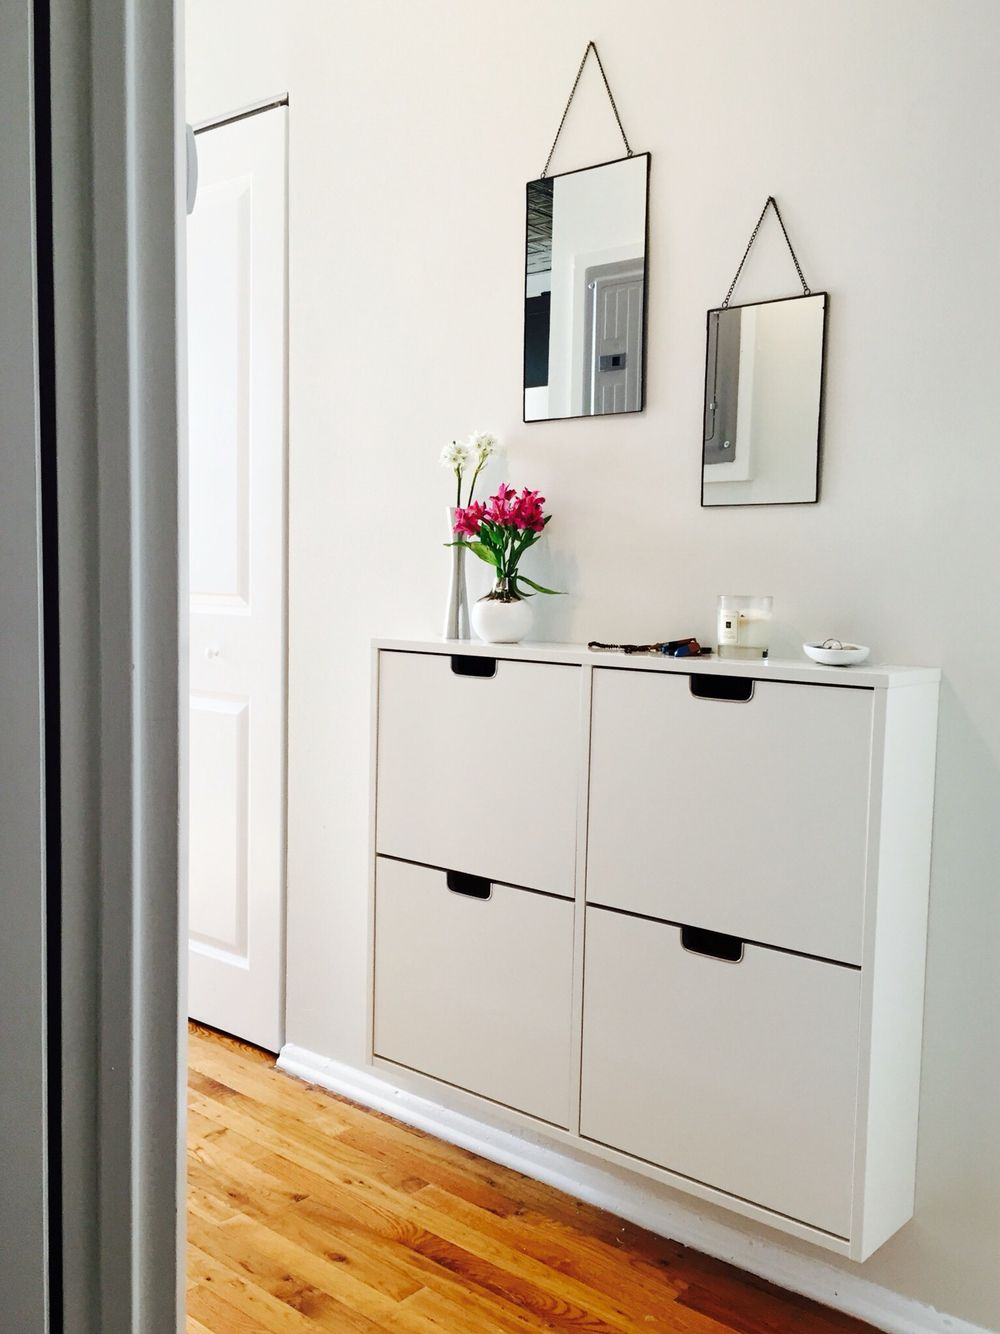 My New Home Entryway Ikea Shoe Holder Canvas Home Mirrors Deco Maison Meuble Entree Idee Deco Bricolage